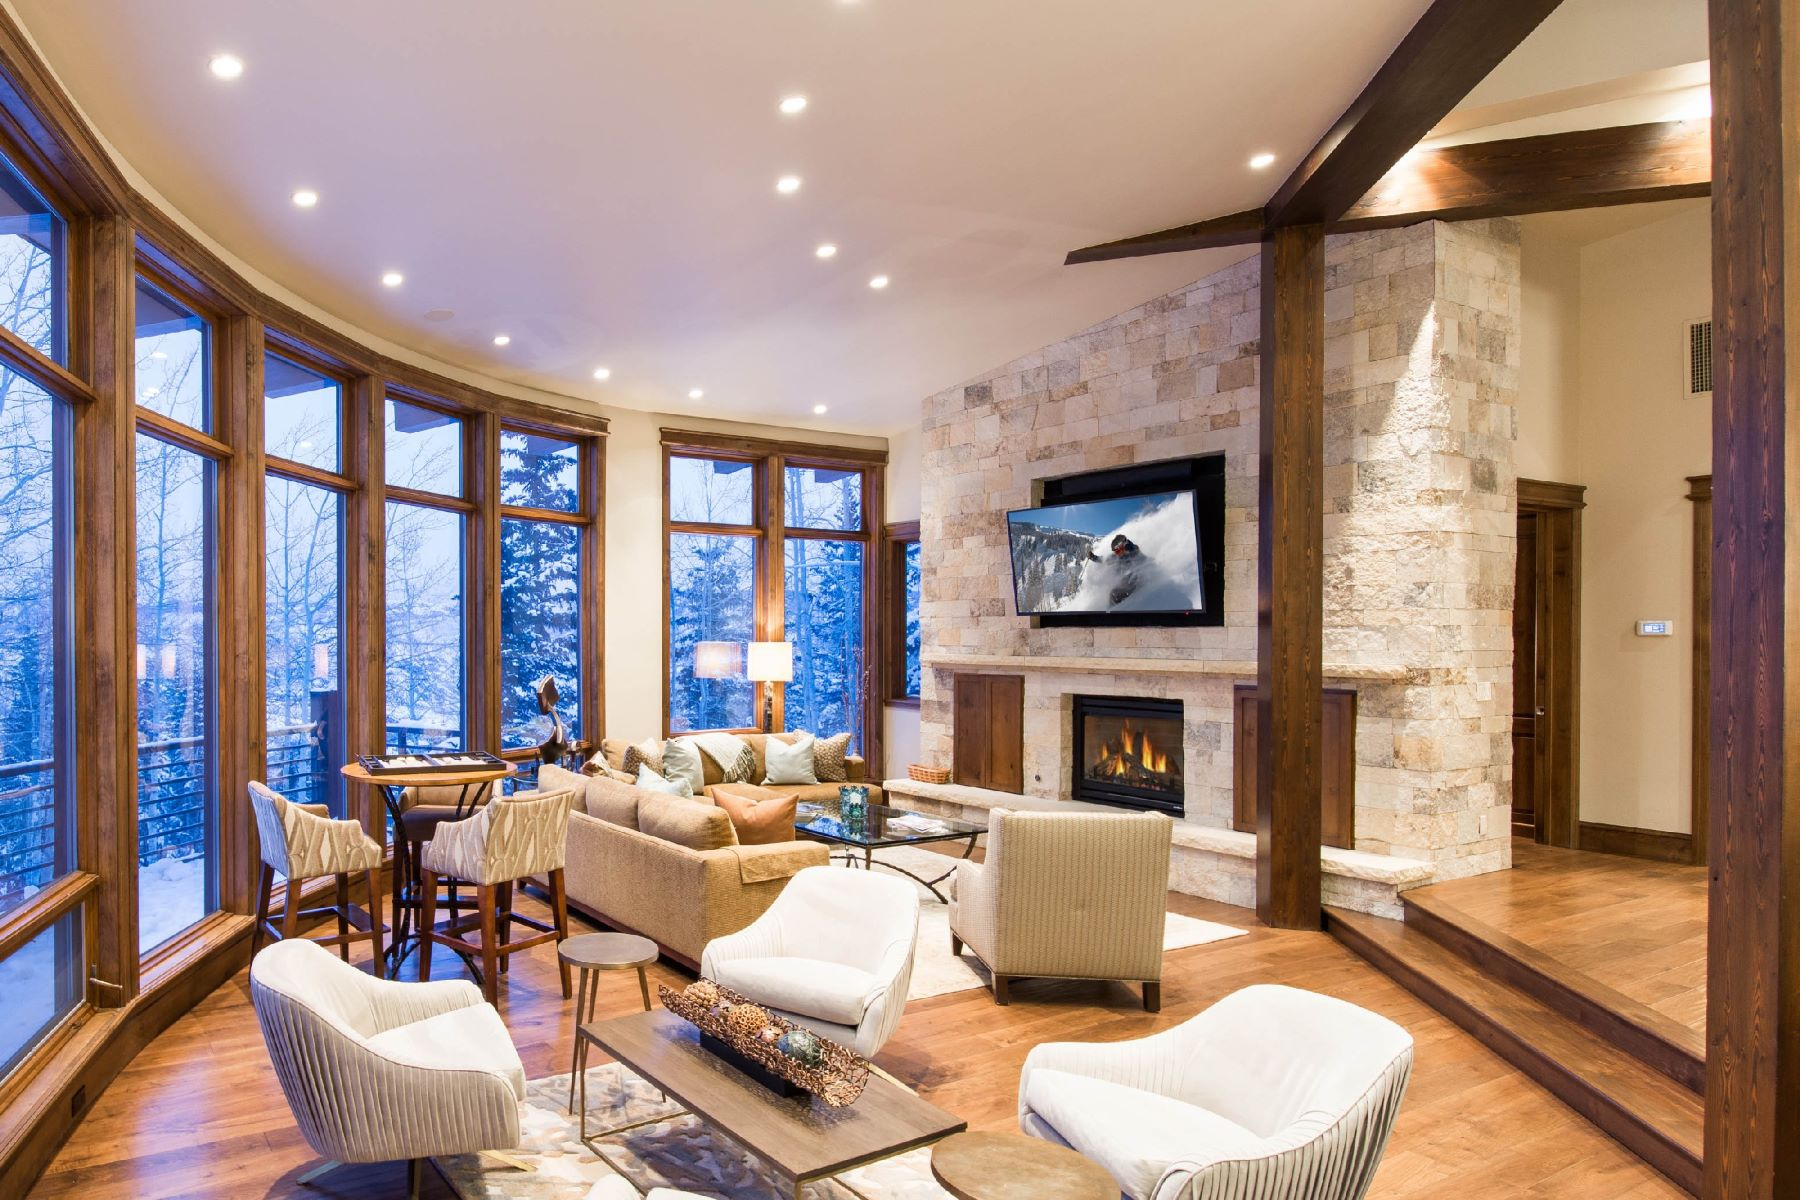 Single Family Homes for Sale at The Ultimate Mountain Home 1457 Wood Rd Snowmass Village, Colorado 81615 United States